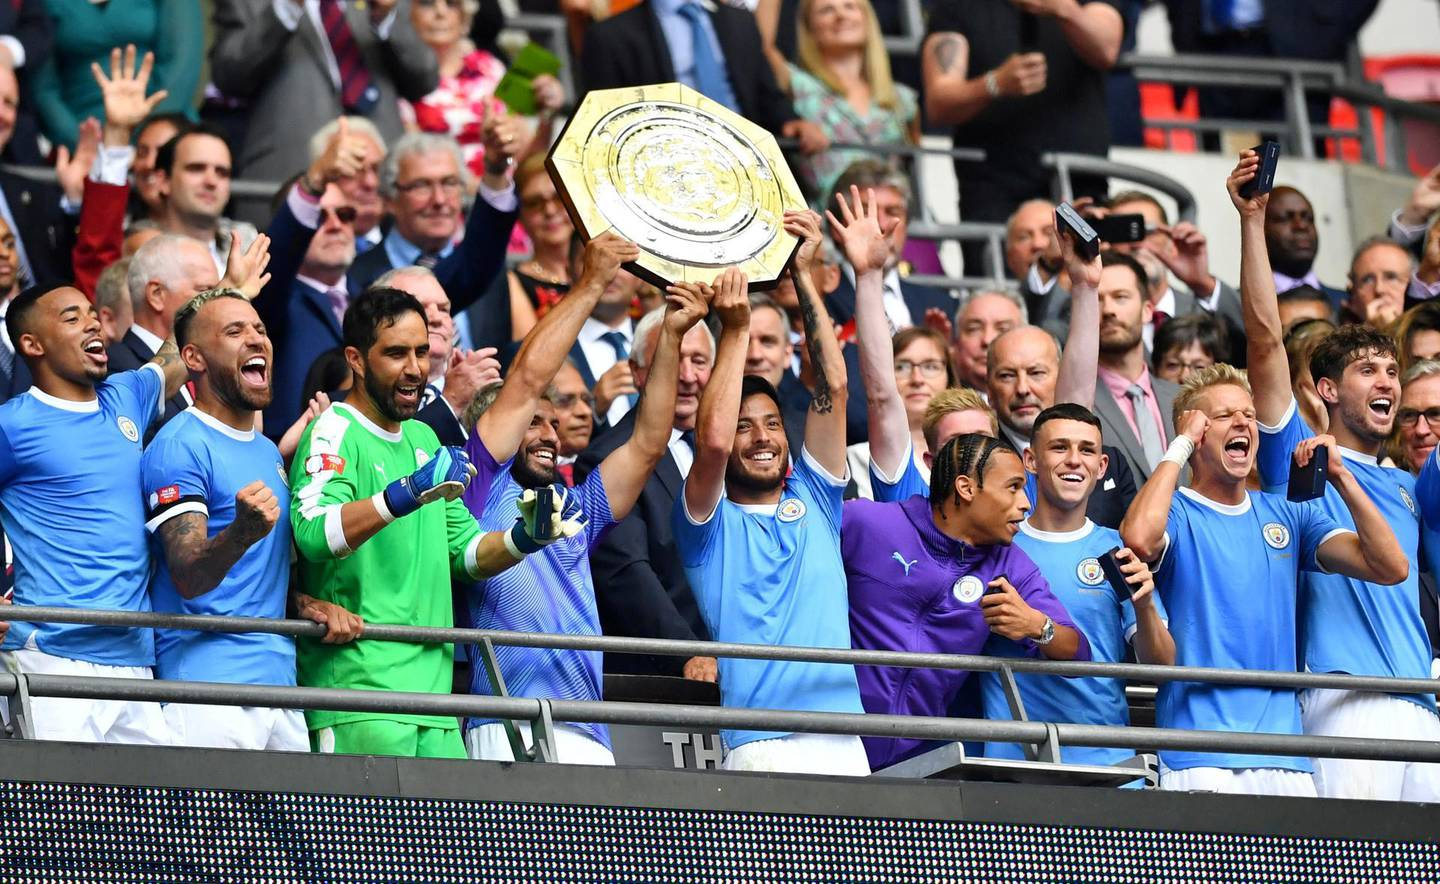 FILE PHOTO: Soccer Football - FA Community Shield - Manchester City v Liverpool - Wembley Stadium, London, Britain - August 4, 2019  Manchester City's Sergio Aguero and David Silva celebrate winning the FA Community Shield with team mates   REUTERS/Dylan Martinez/File Photo